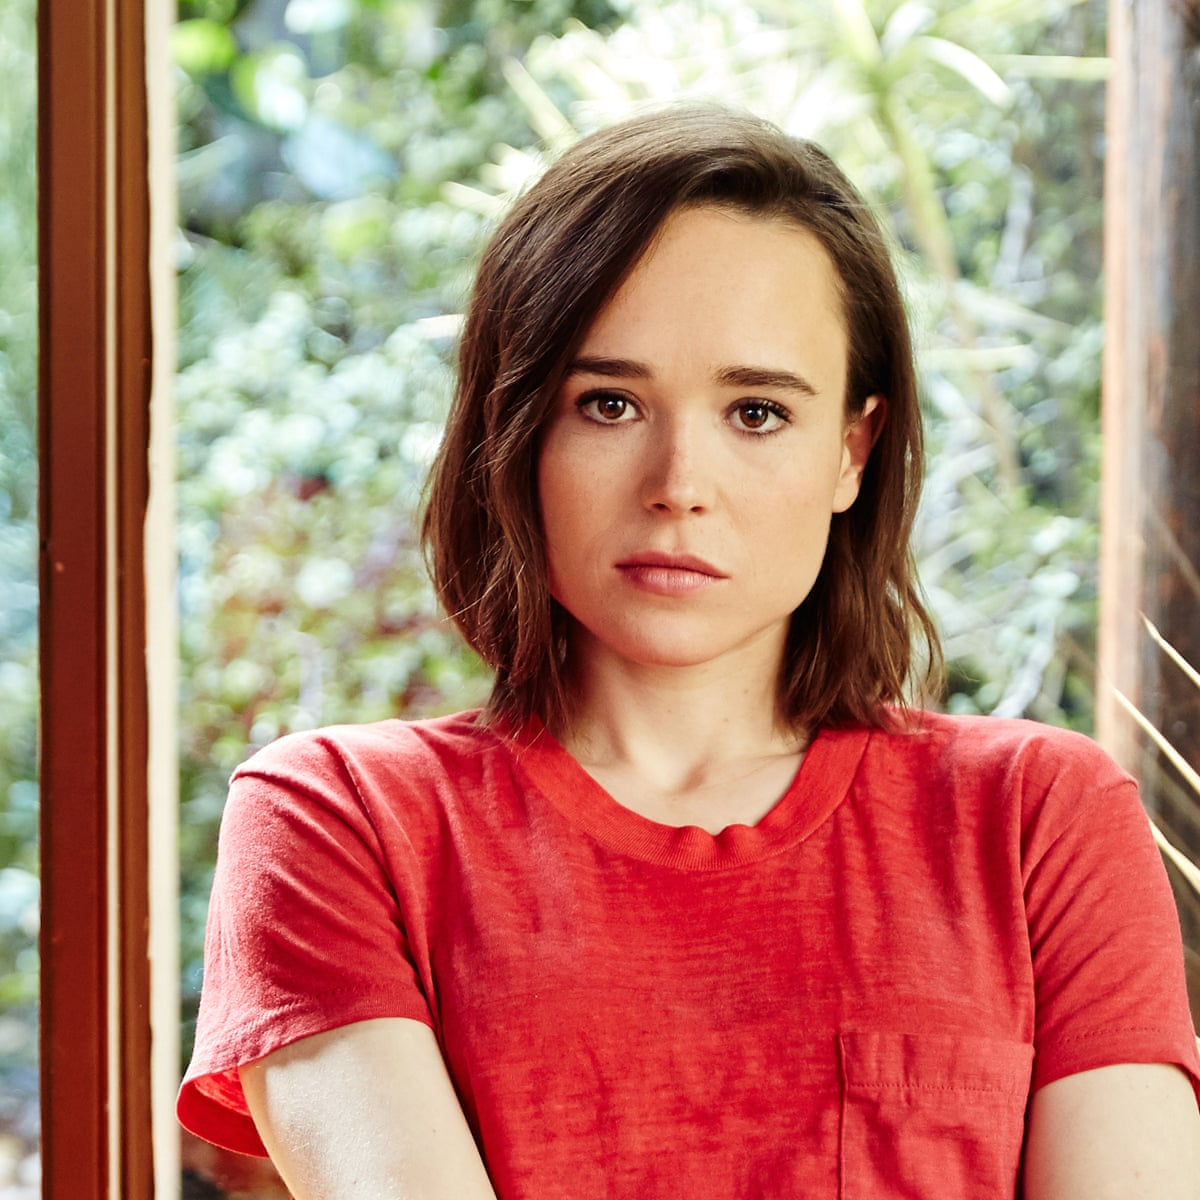 Ellen Page Being Out Became More Important Than Any Movie Elliot Page The Guardian